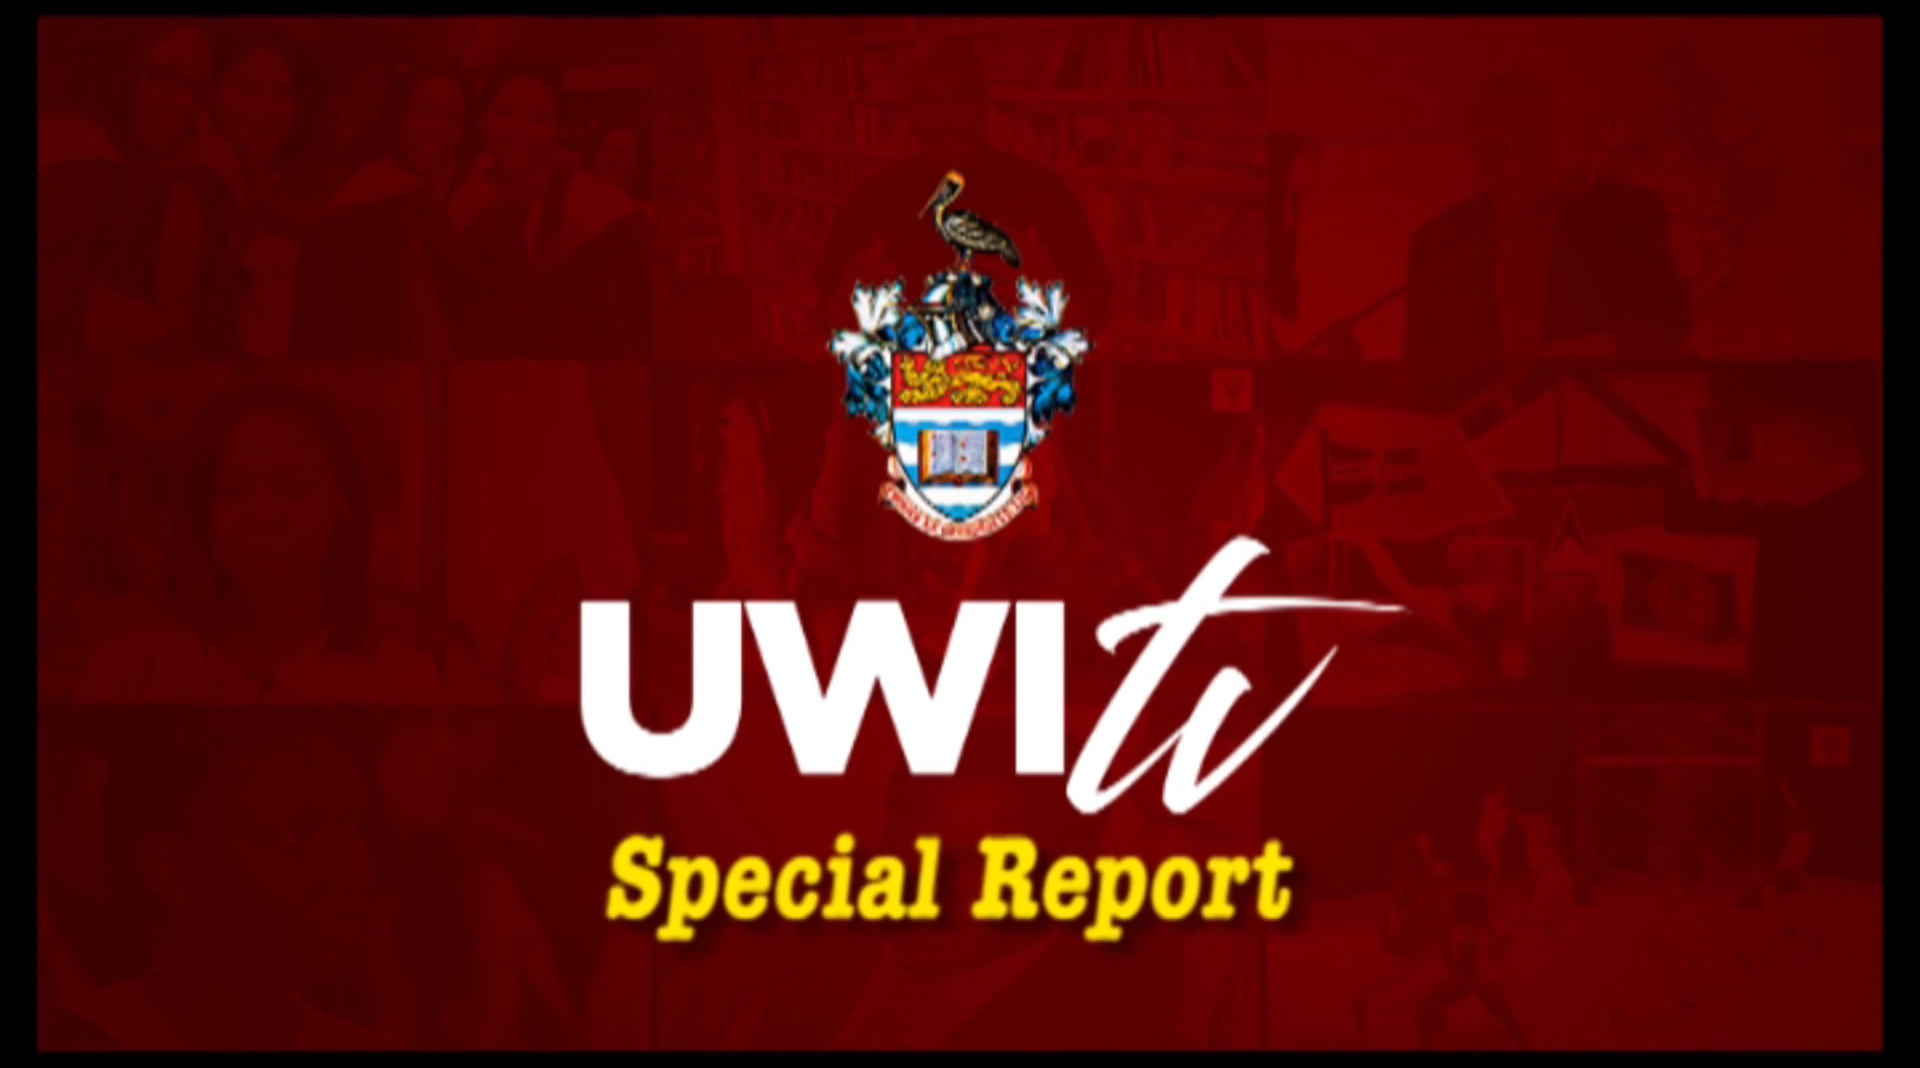 UWI TV Special Report